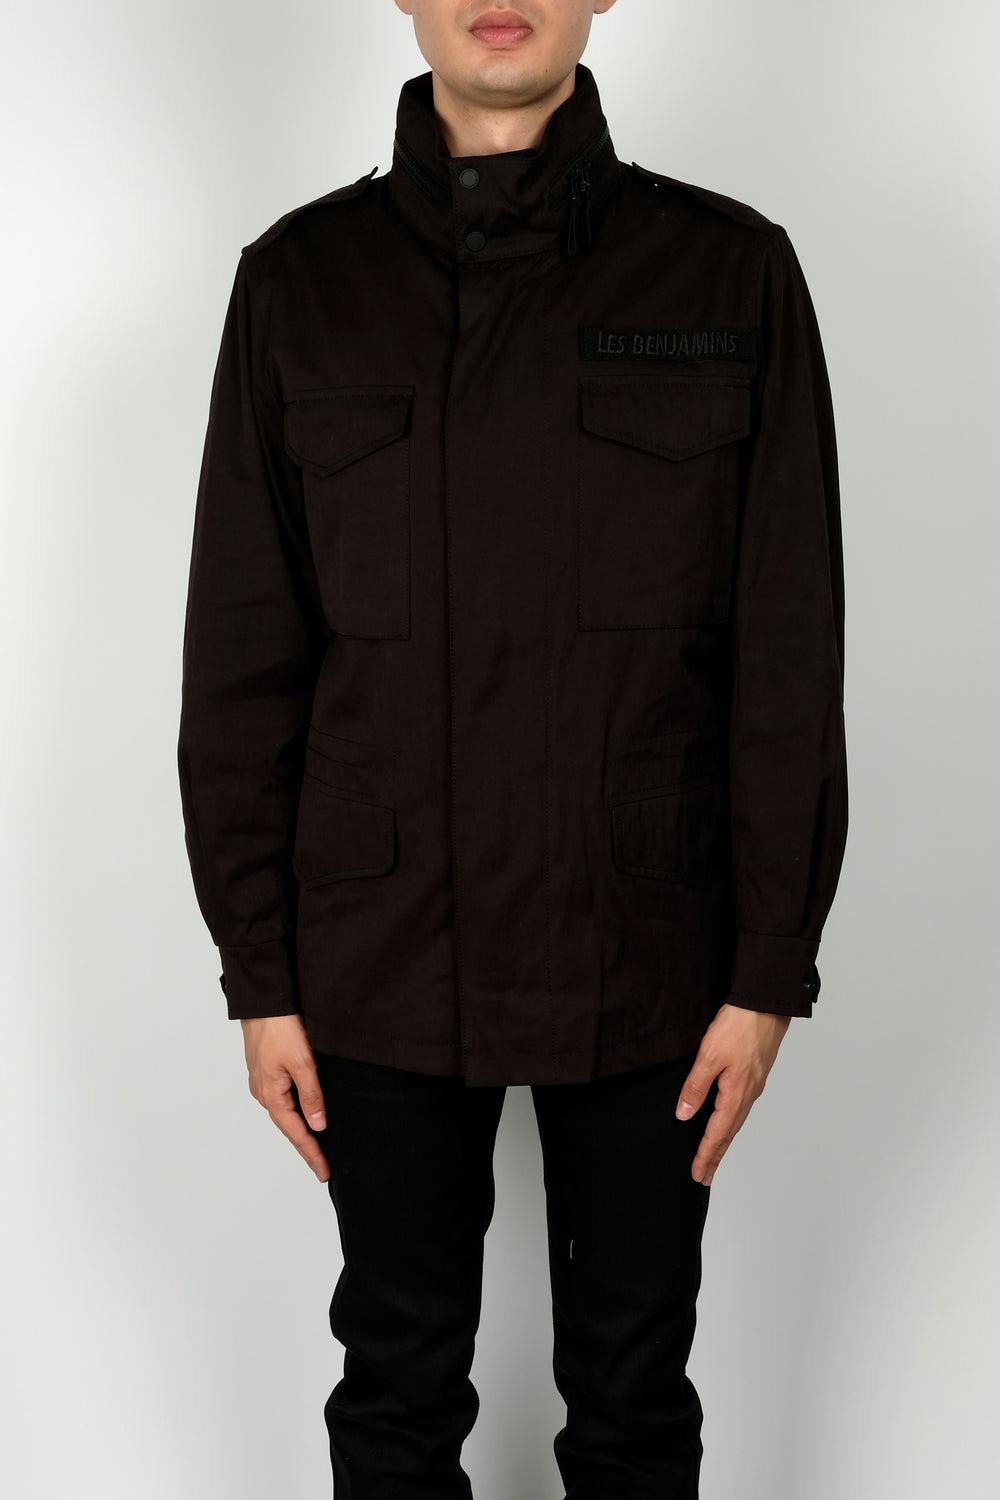 Les Benjamins Zeus Jacket In Black